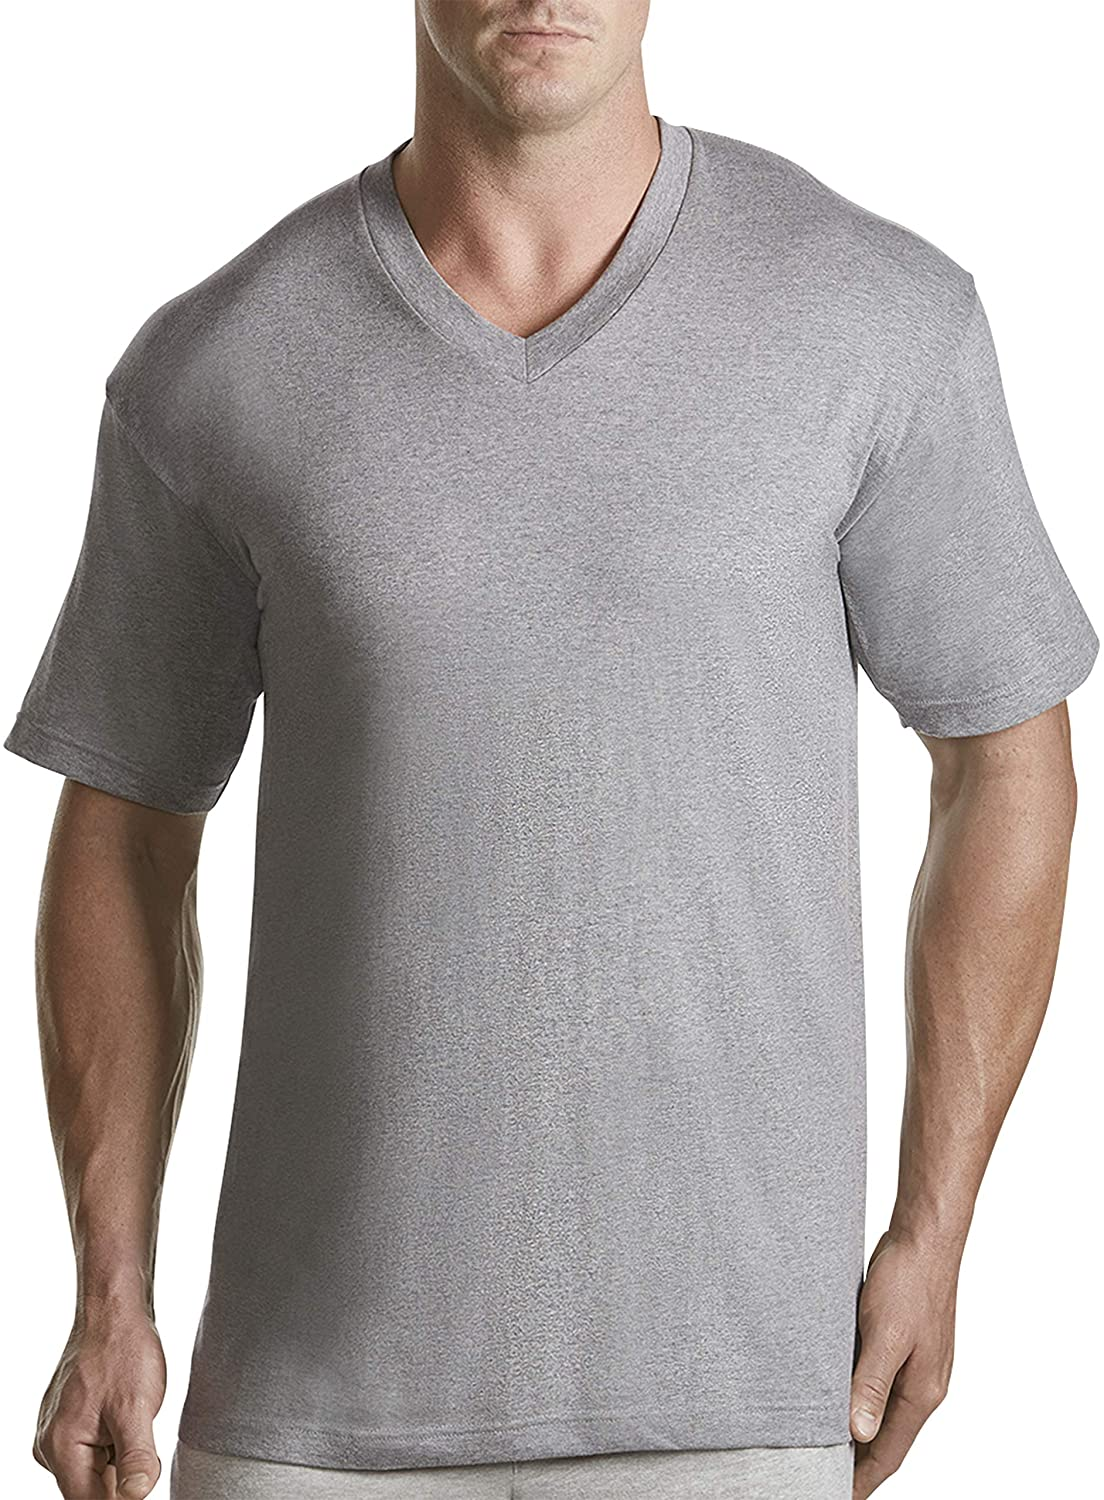 Harbor Bay by DXL Big and Tall 3-pk V-Neck T-Shirts, White